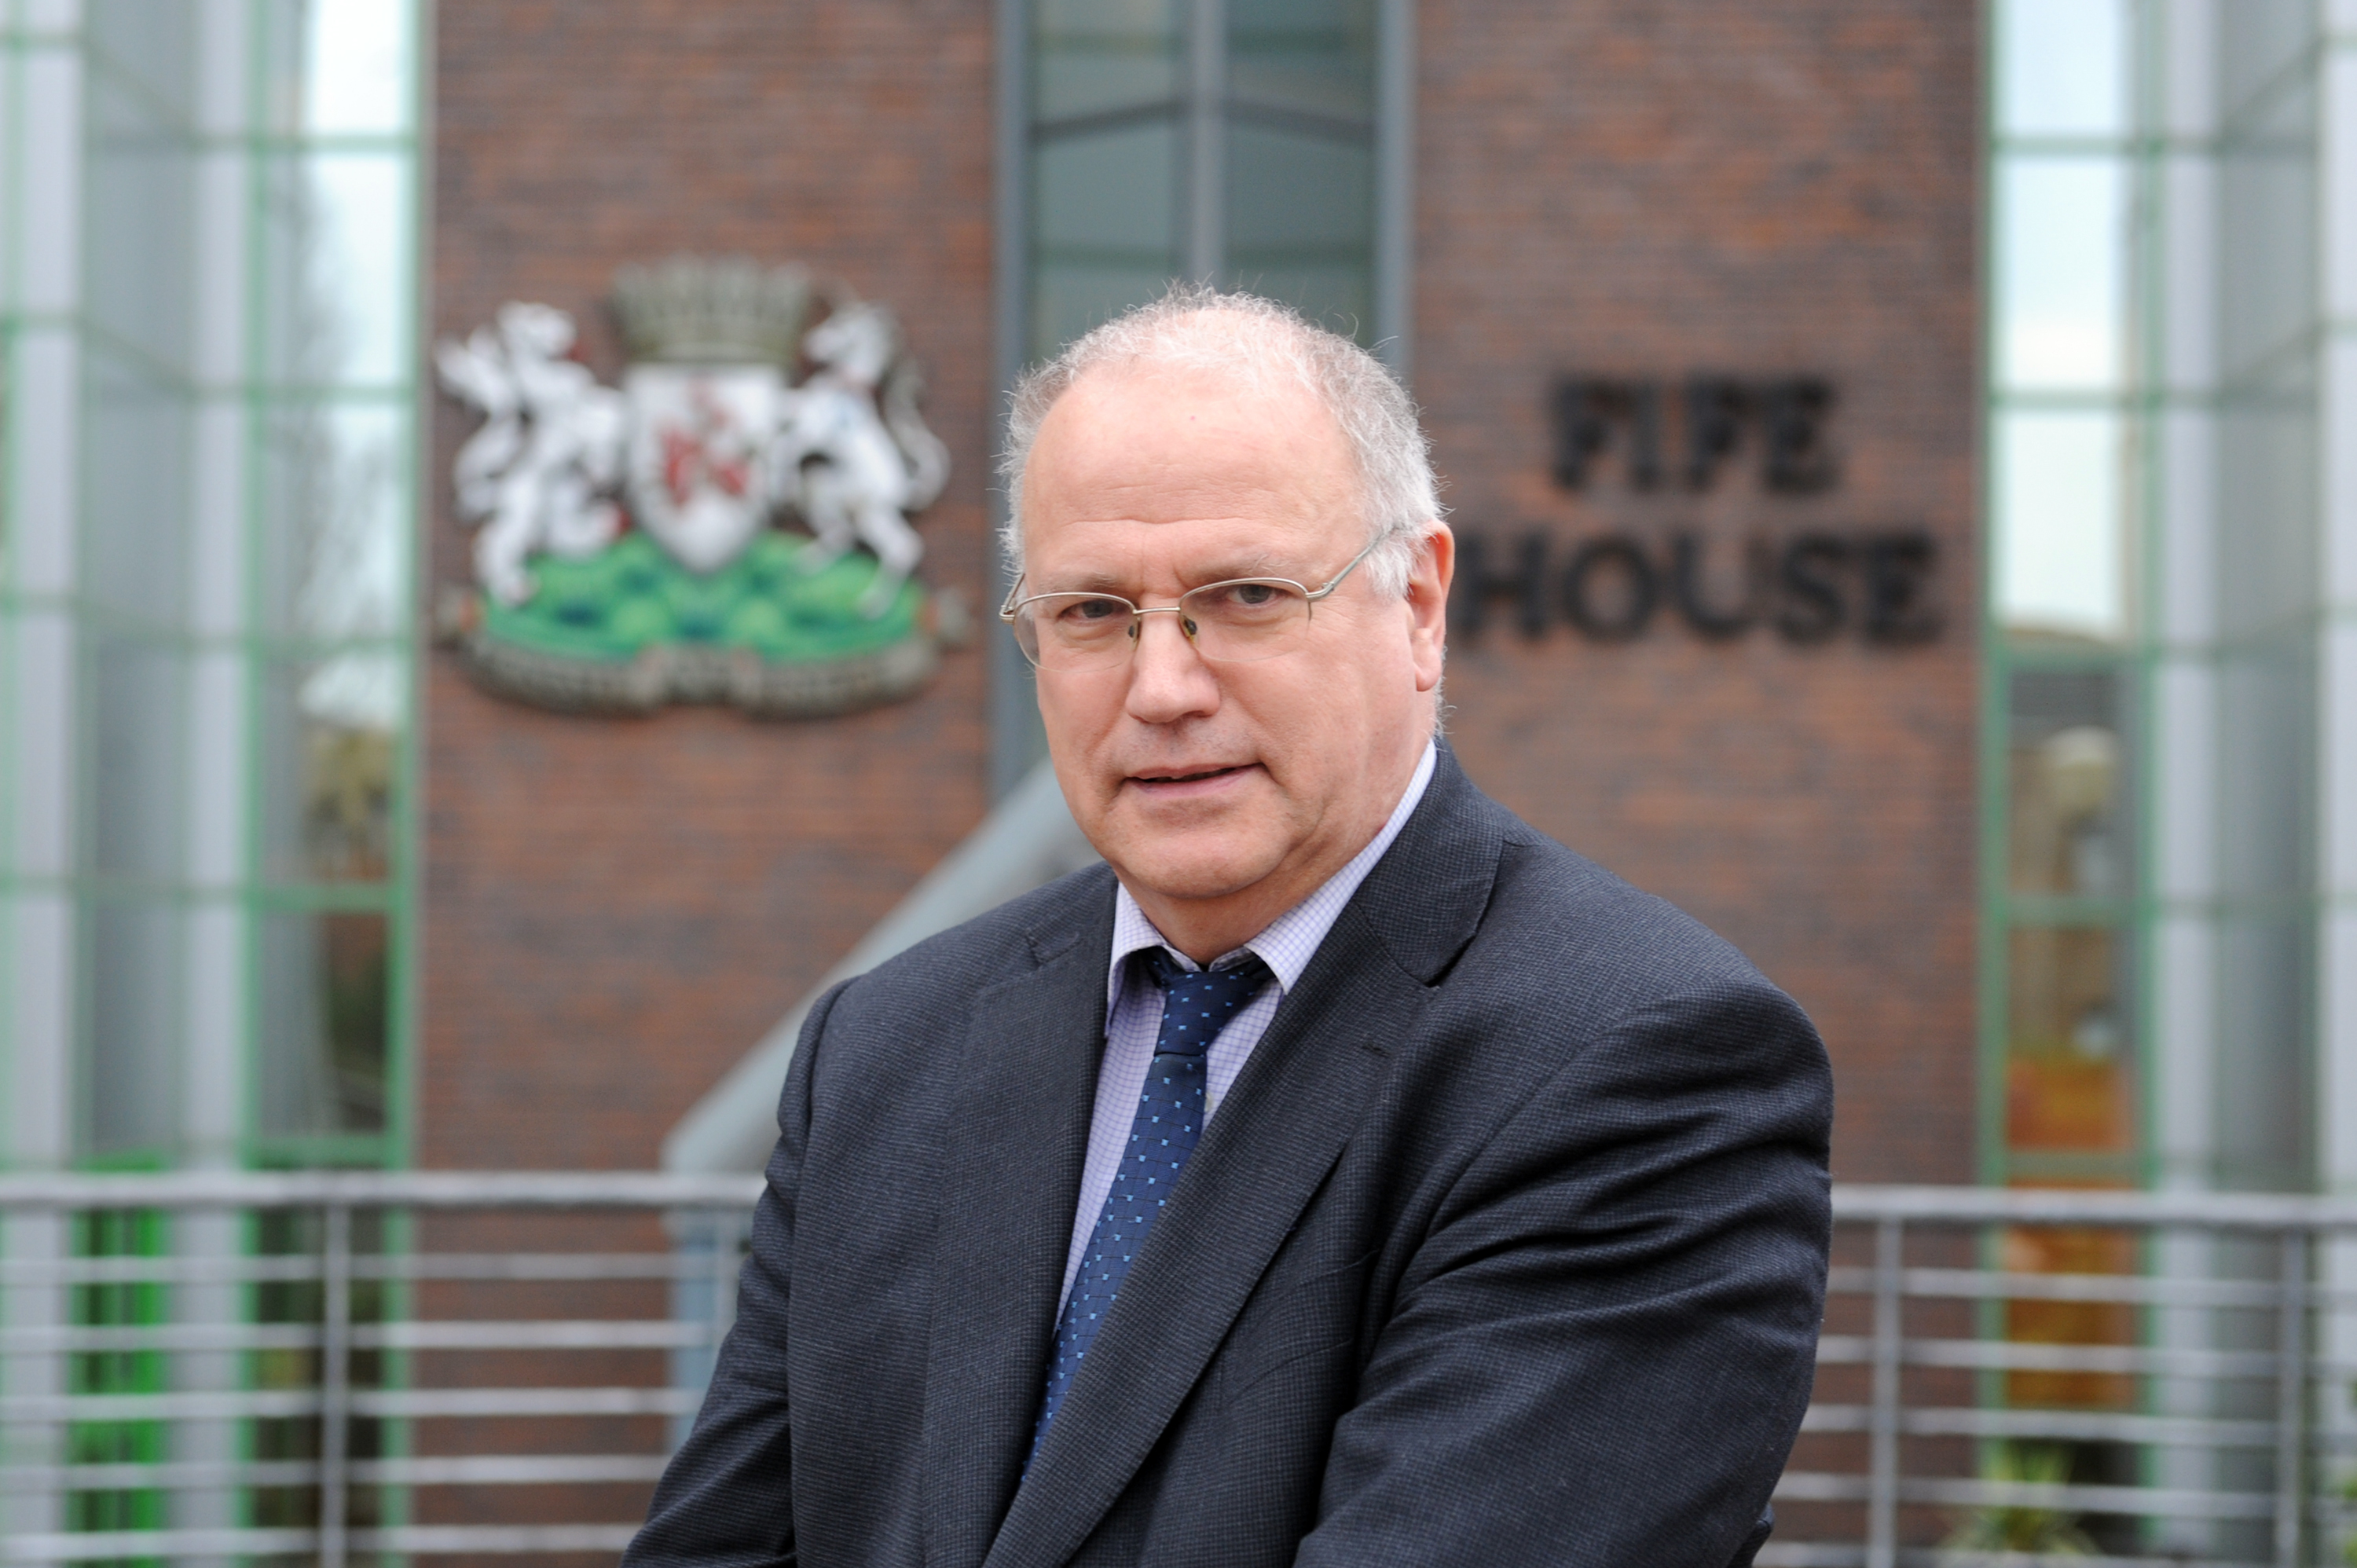 Councillor Ross said the rises spared the service from the axe